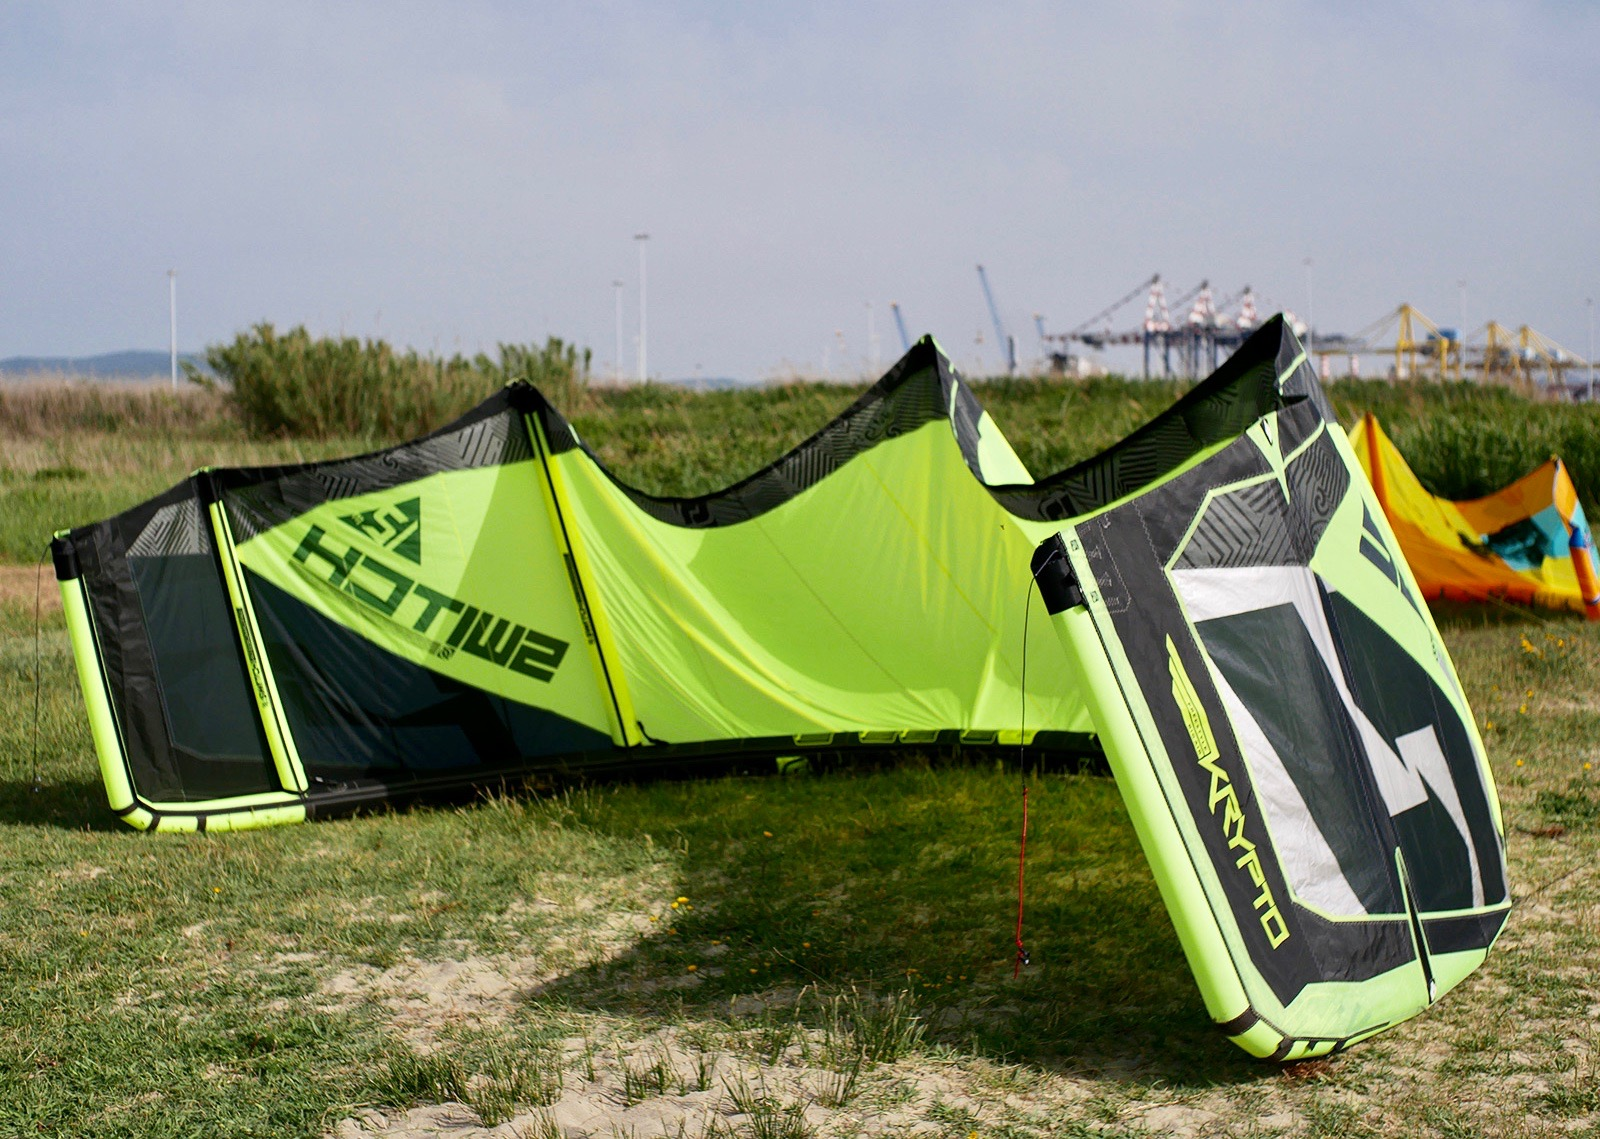 Switch Krypto 12m kite drying on grass with cranes in the background.